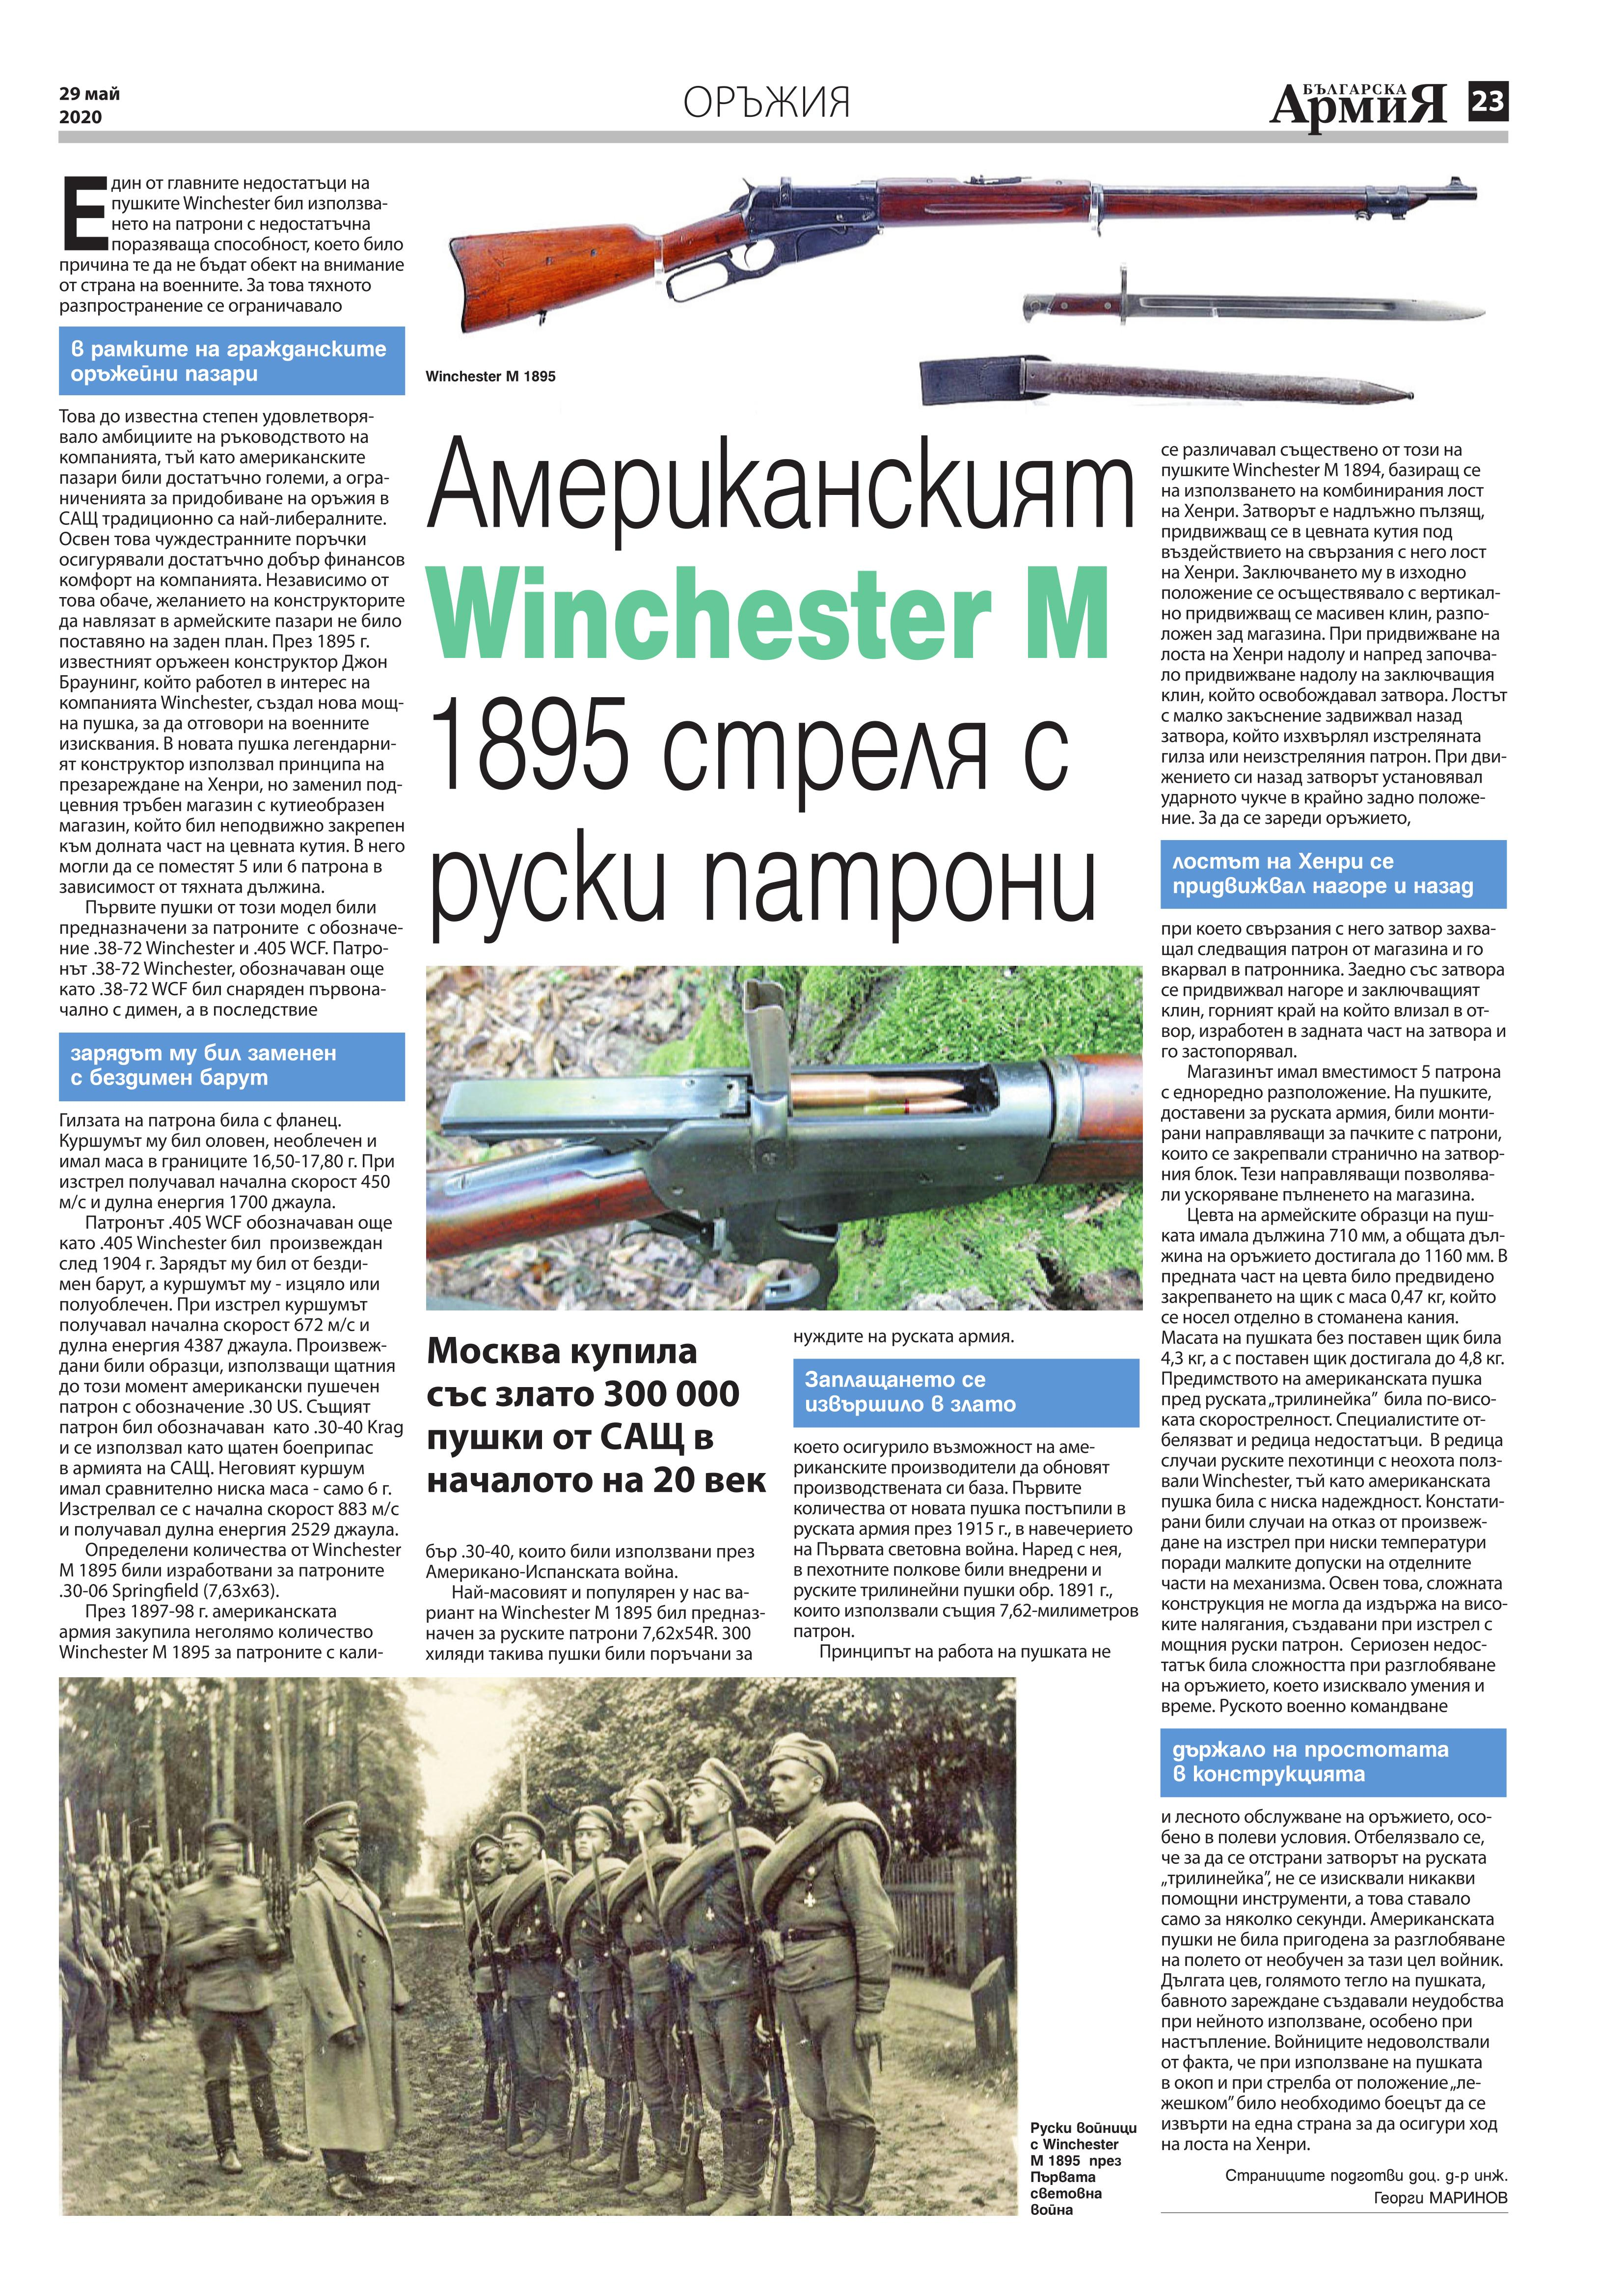 https://www.armymedia.bg/wp-content/uploads/2015/06/23.page1_-141.jpg